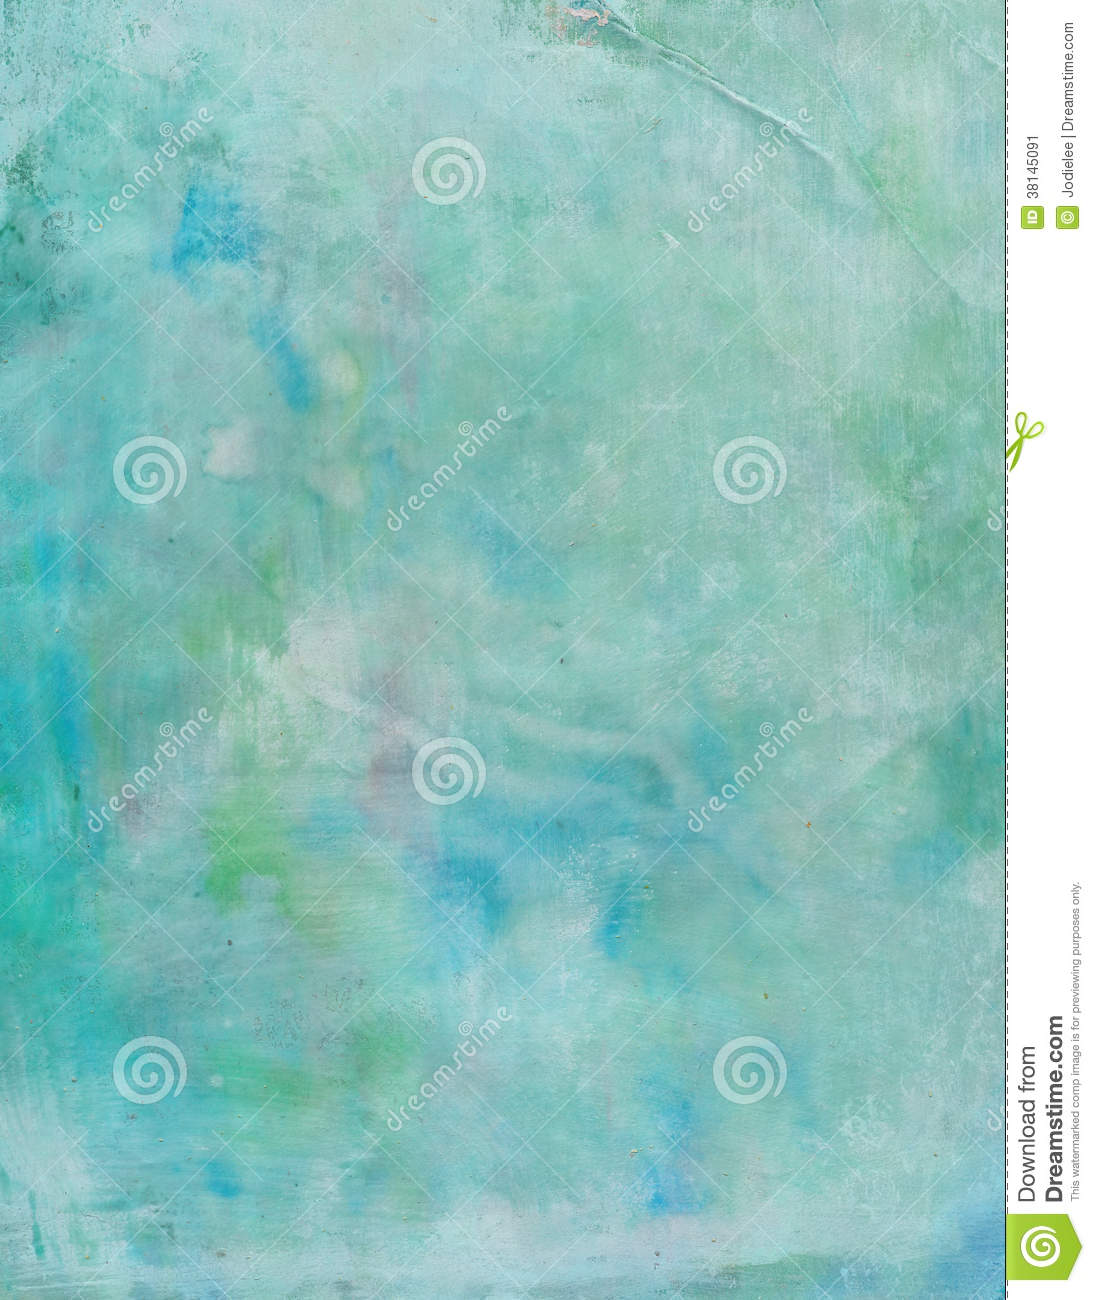 Grungy Blue And Green Painted Abstract Background Stock